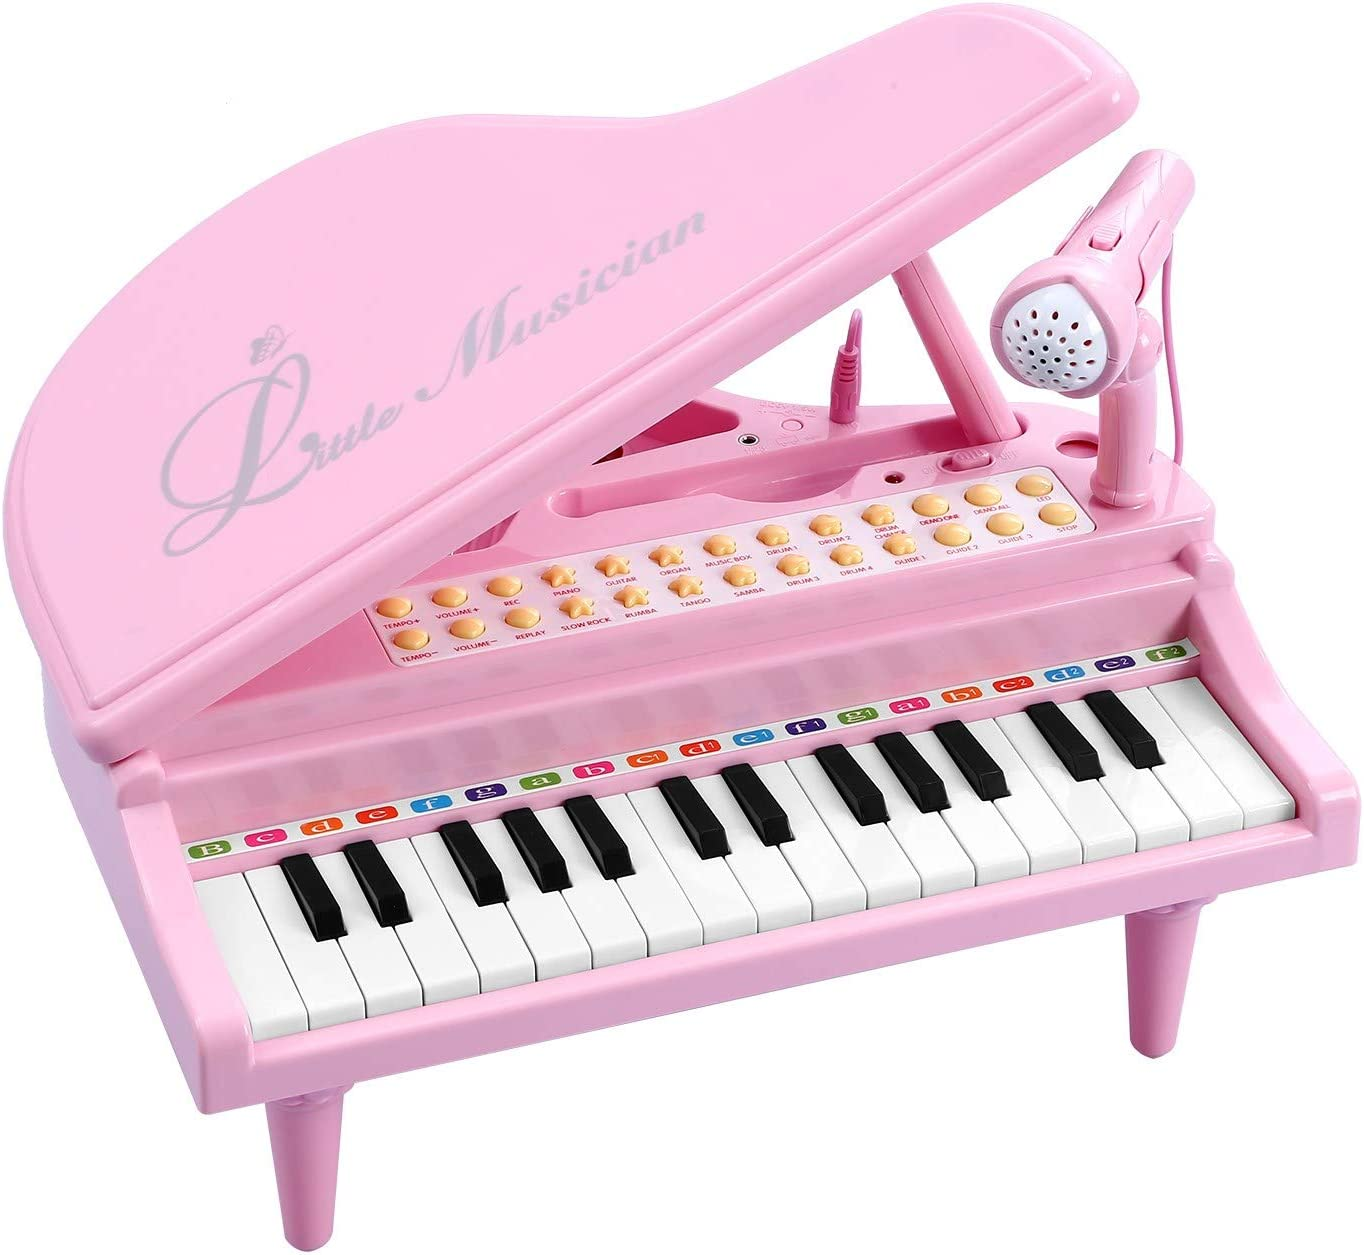 BAOLI Toy Piano for Girls Limited price - Cash special price Birthday 4 3 Tod Old Year 5 Gift